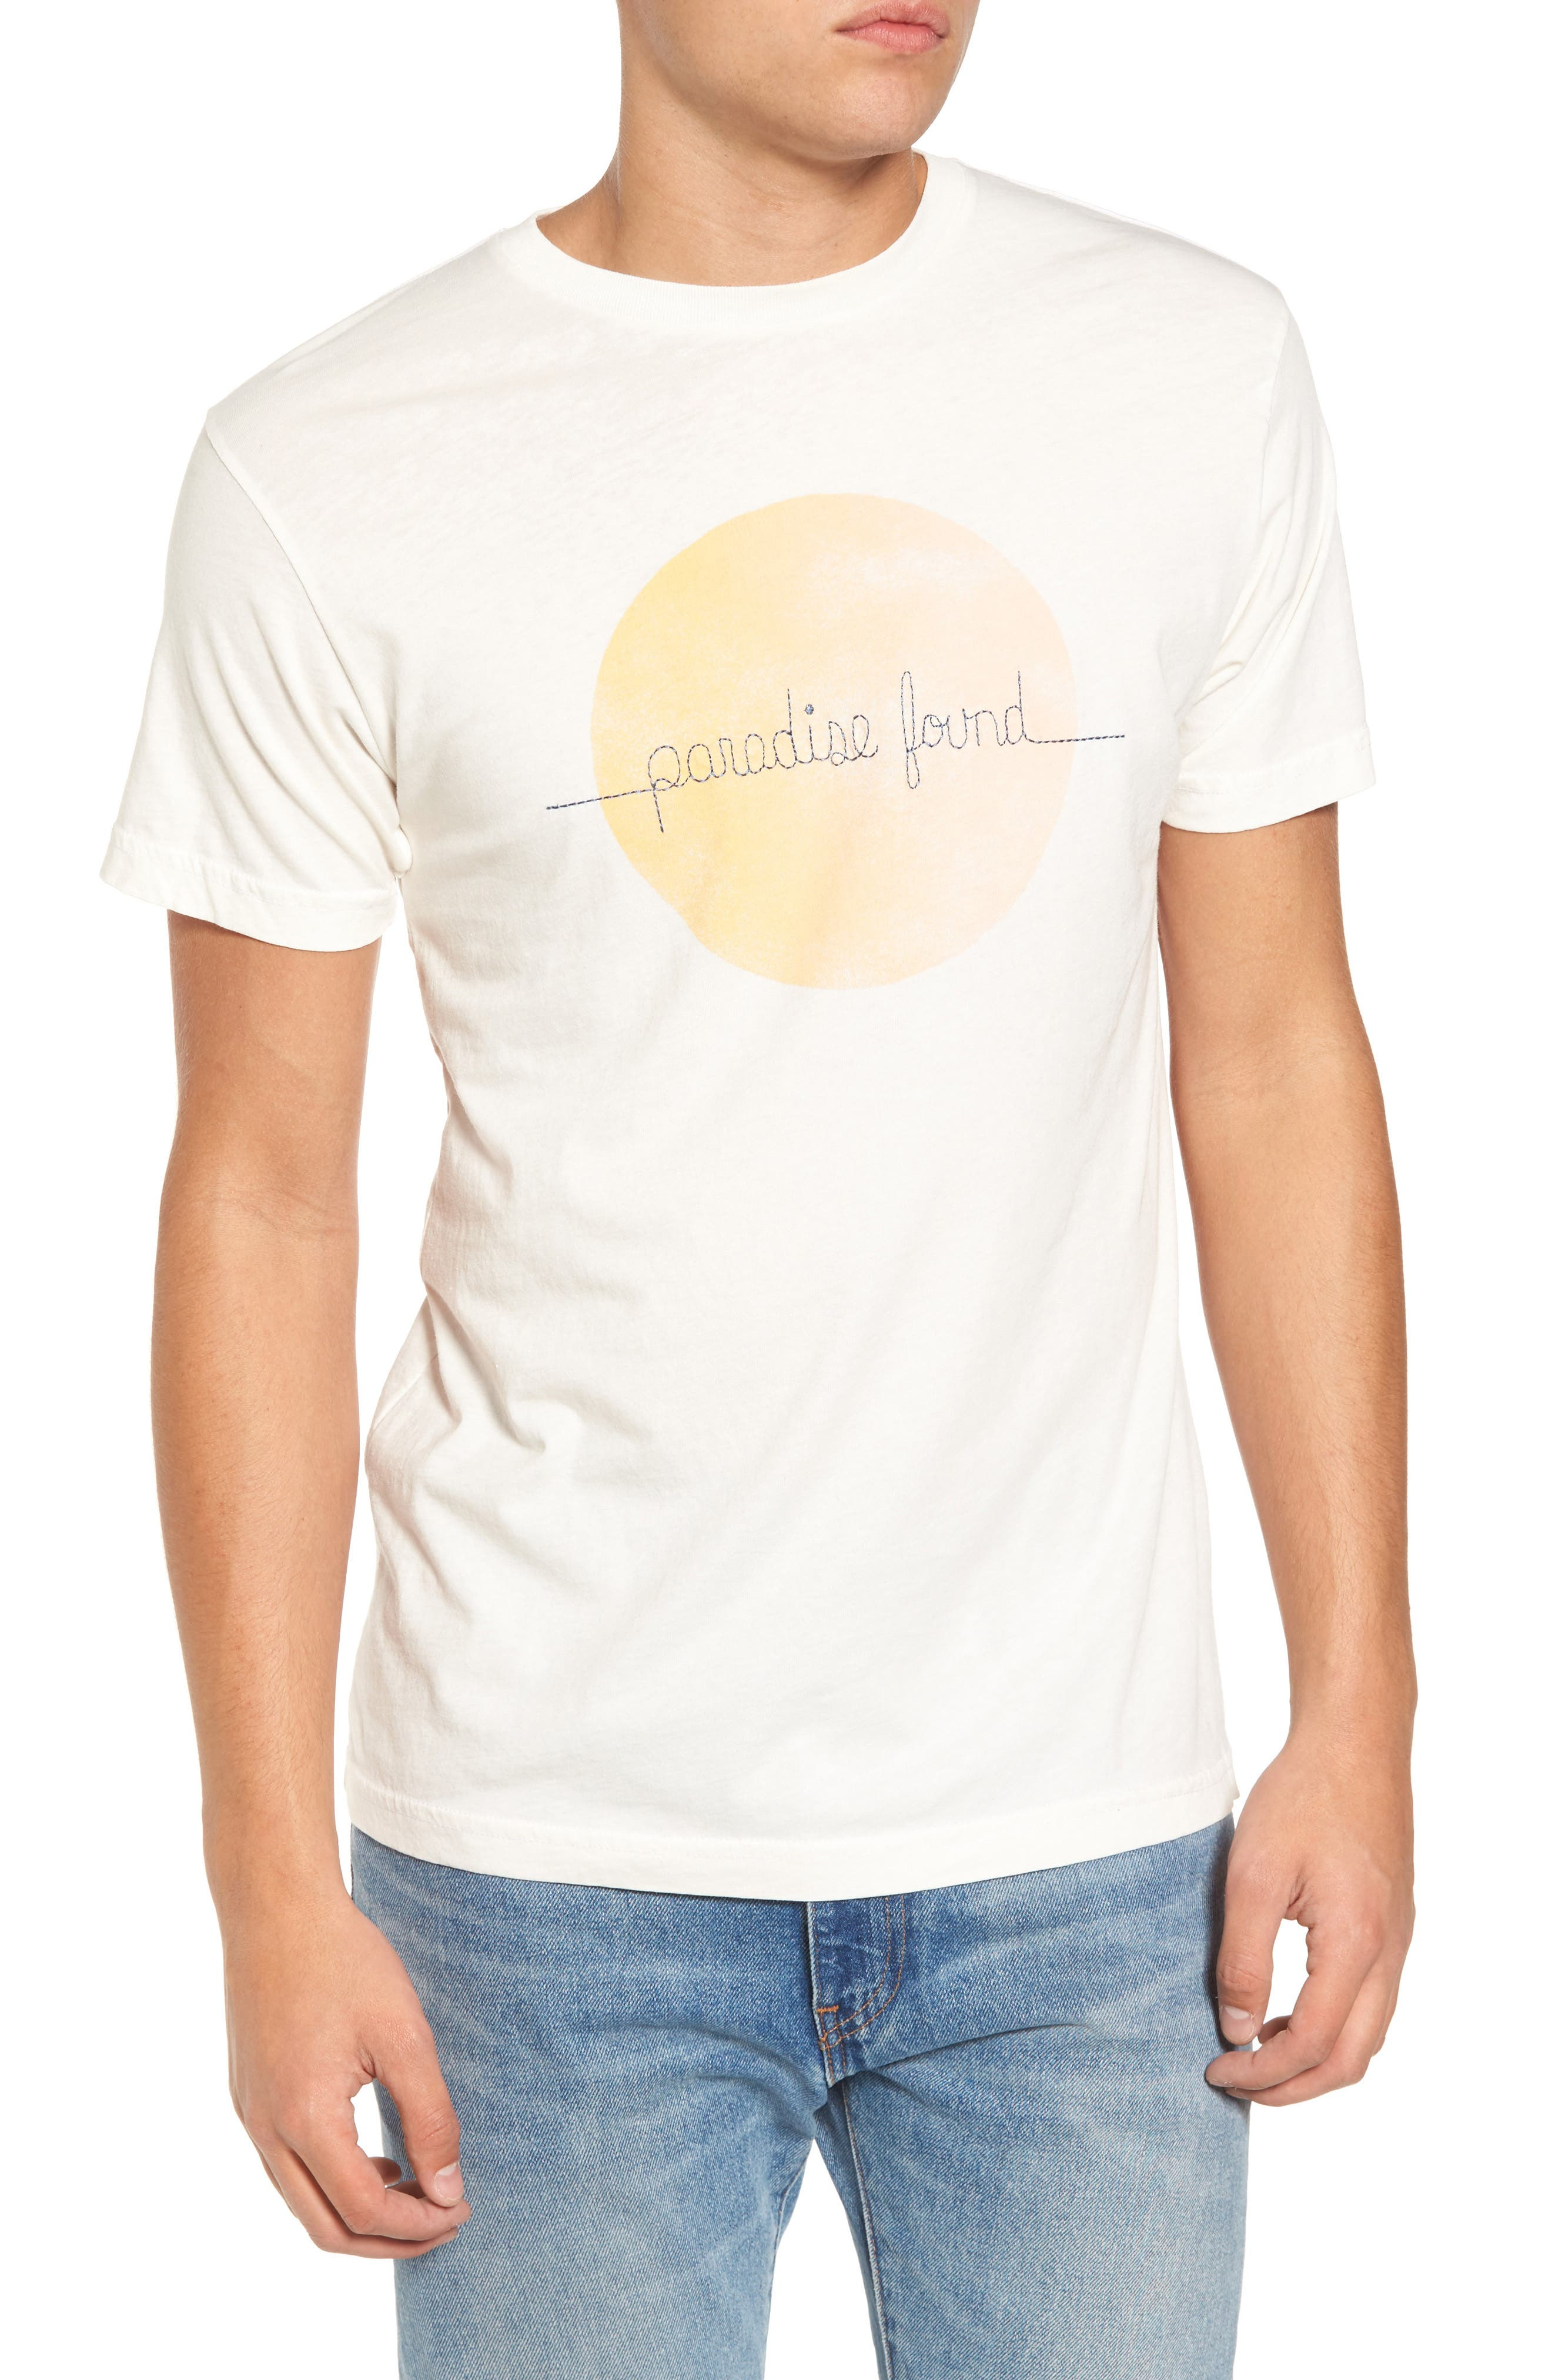 Paradise Found Embroidered T-Shirt,                         Main,                         color, White